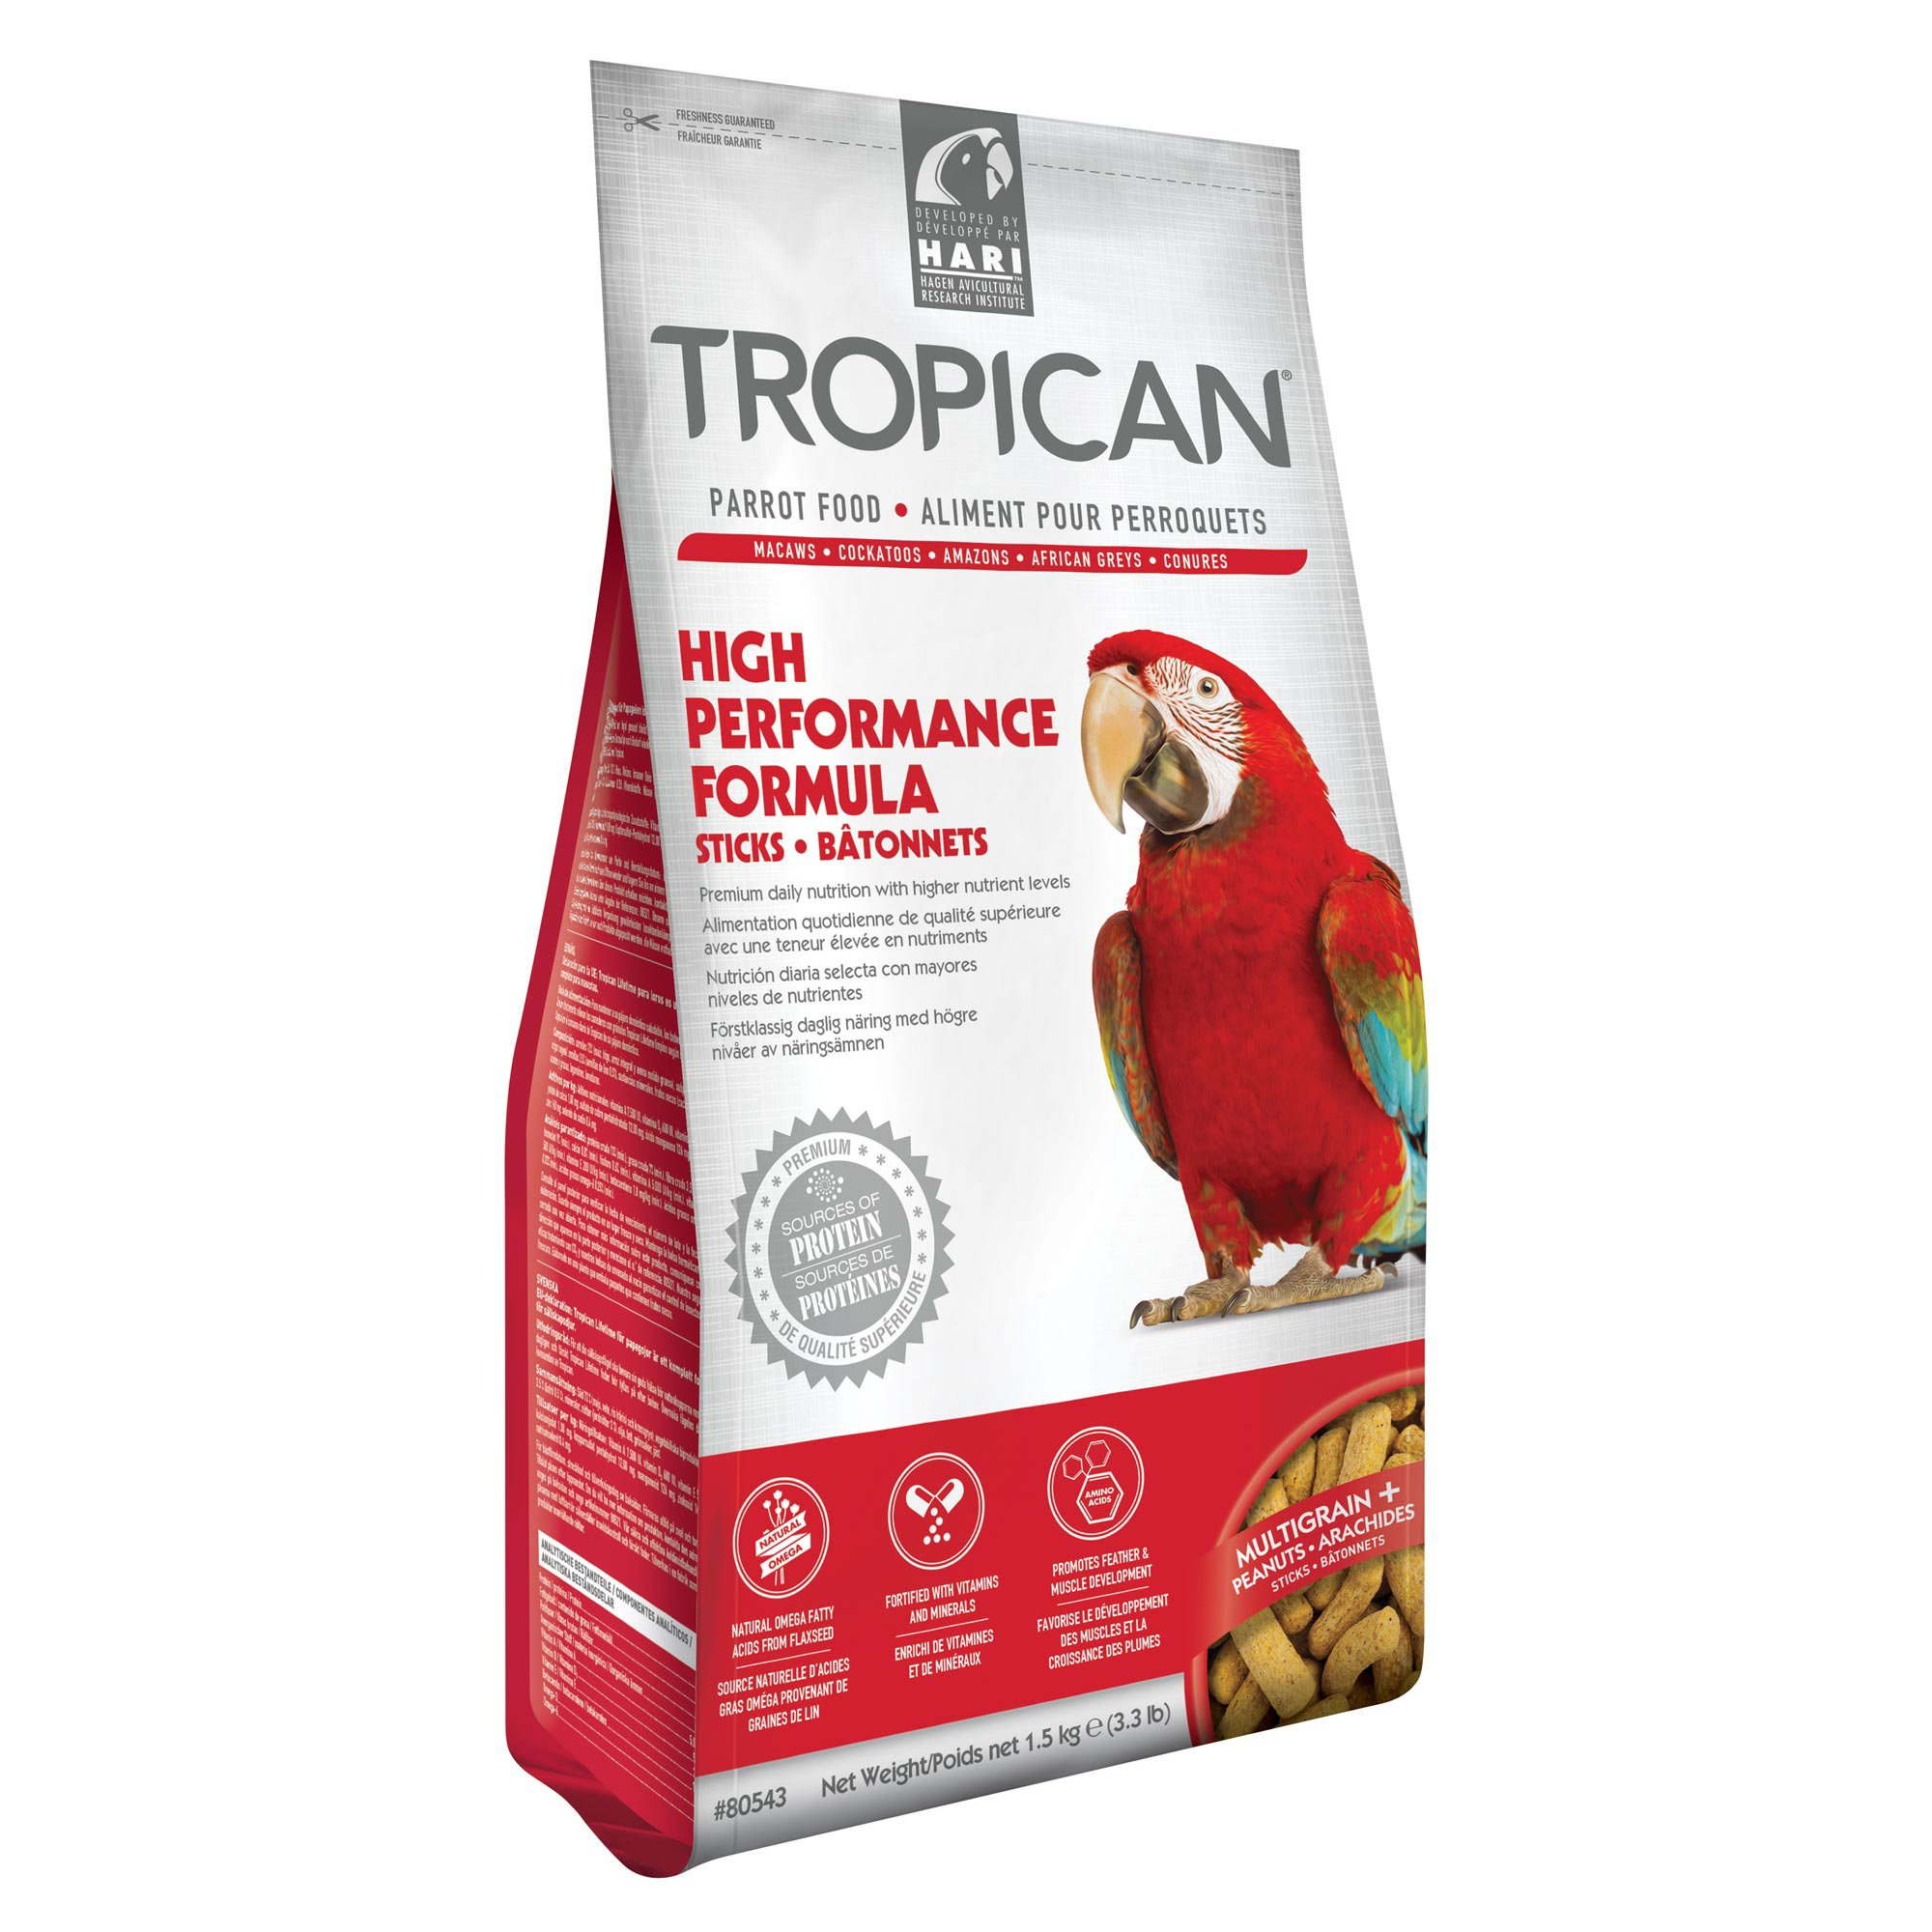 Tropican High Performance Sticks, Parrot